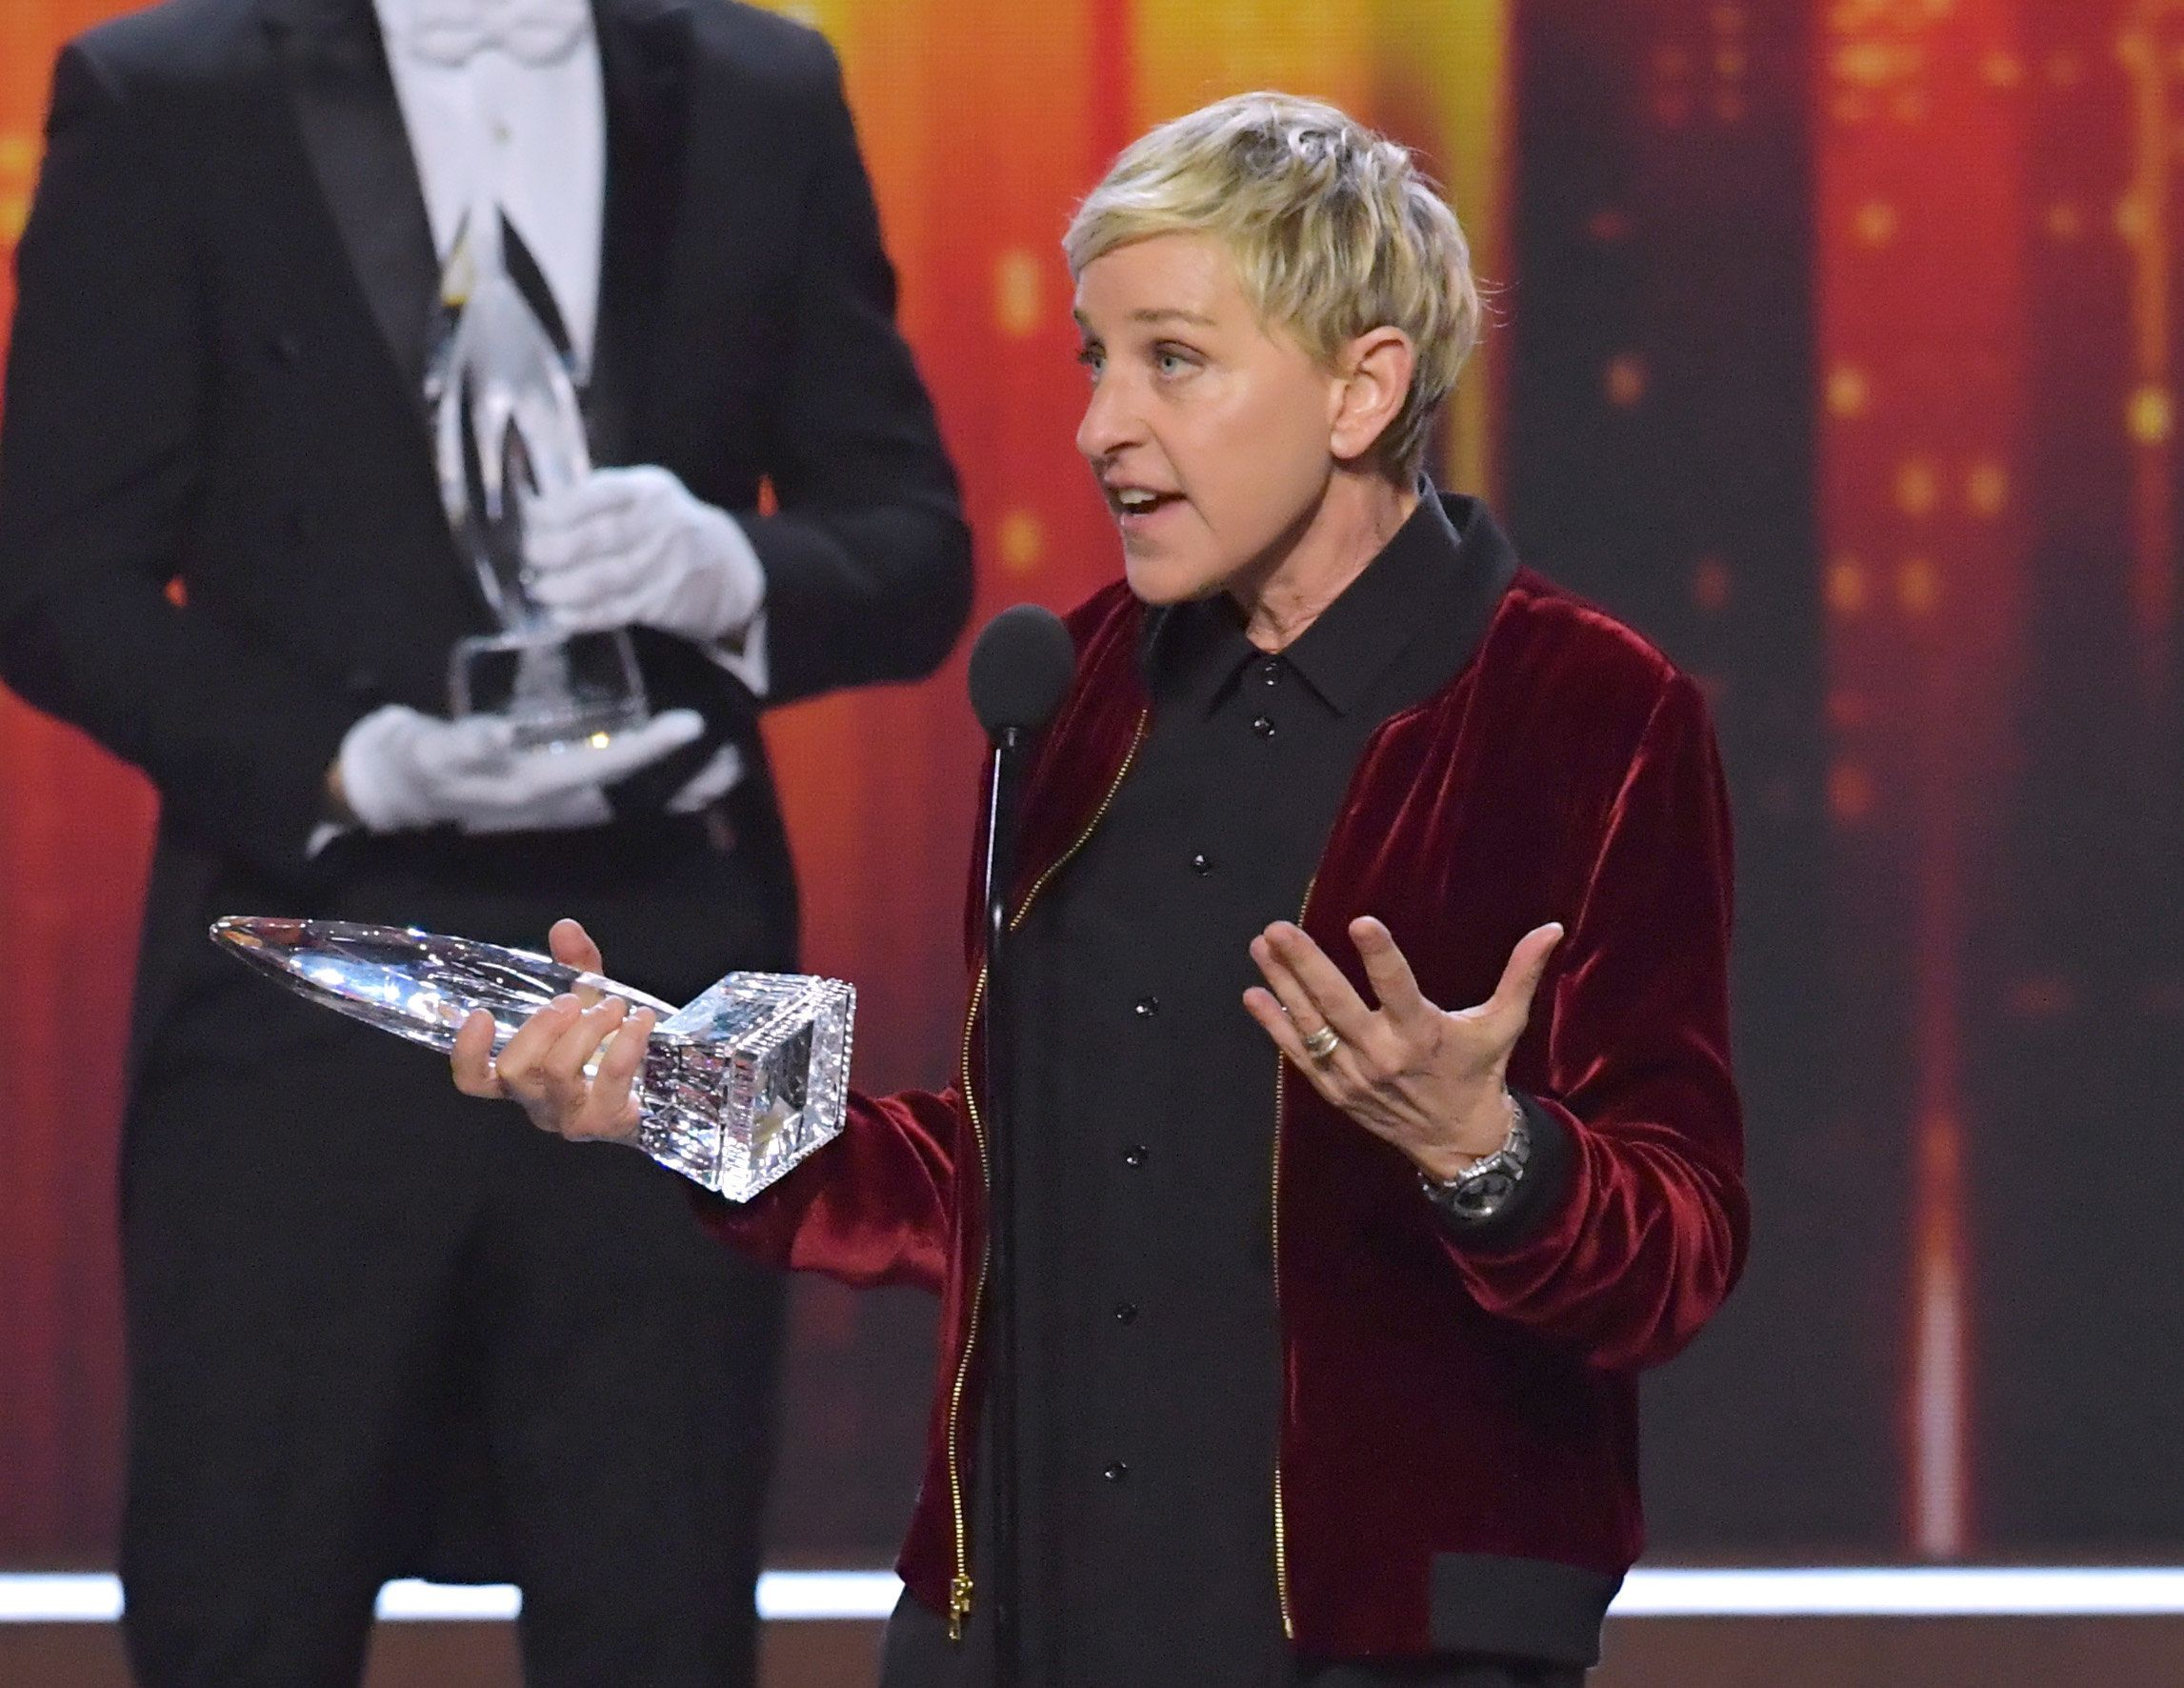 LOS ANGELES, CA - JANUARY 18:  Comedienne Ellen DeGeneres accepts her record-setting 20th People's Choice Award onstage during the People's Choice Awards 2017 at Microsoft Theater on January 18, 2017 in Los Angeles, California.  (Photo by Lester Cohen/WireImage)